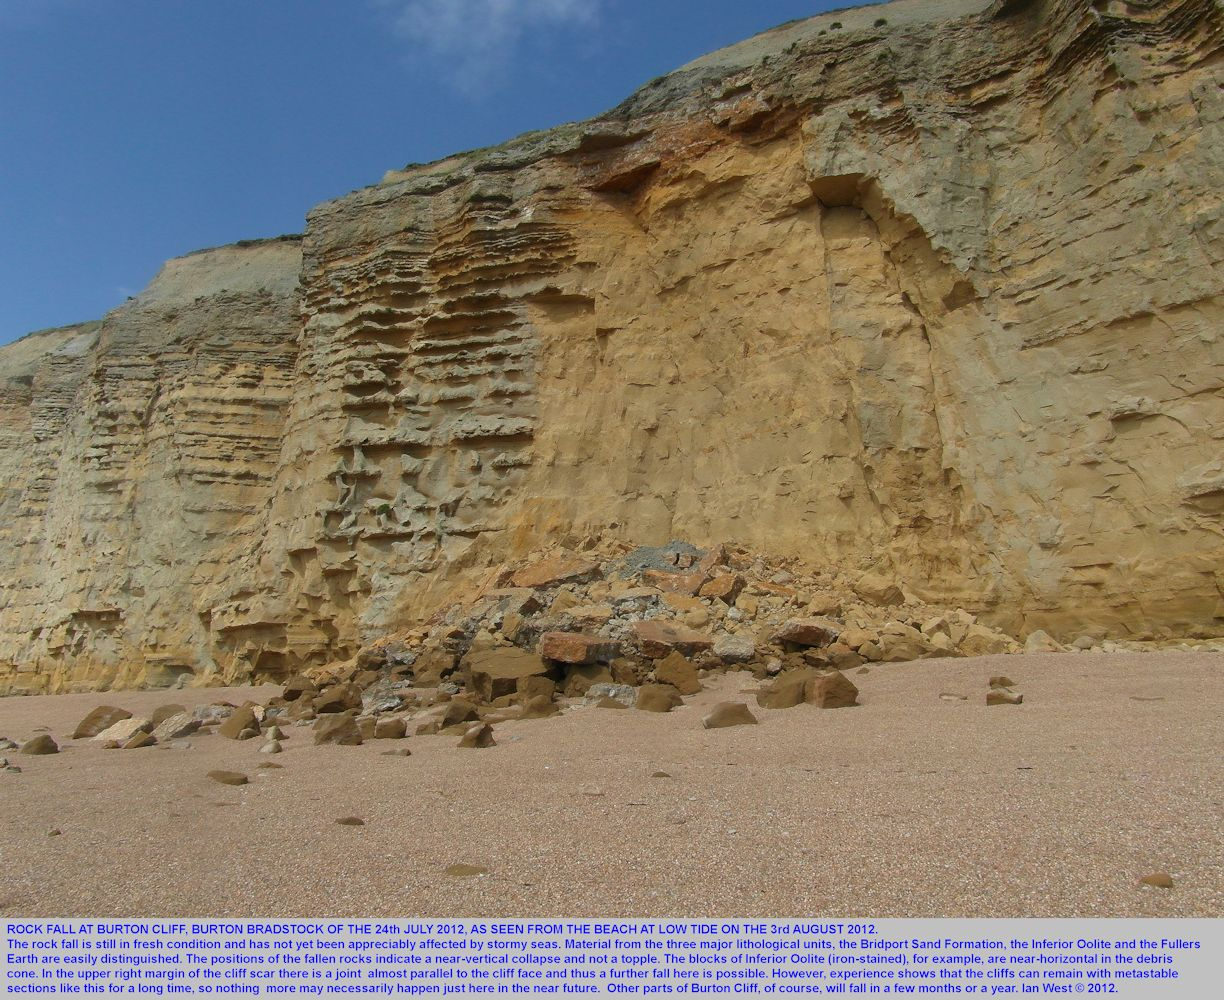 The rock fall of 24th July 2012, seen from the beach at low tide, 3rd August 2012, Burton Cliff, Burton Bradstock, Dorset